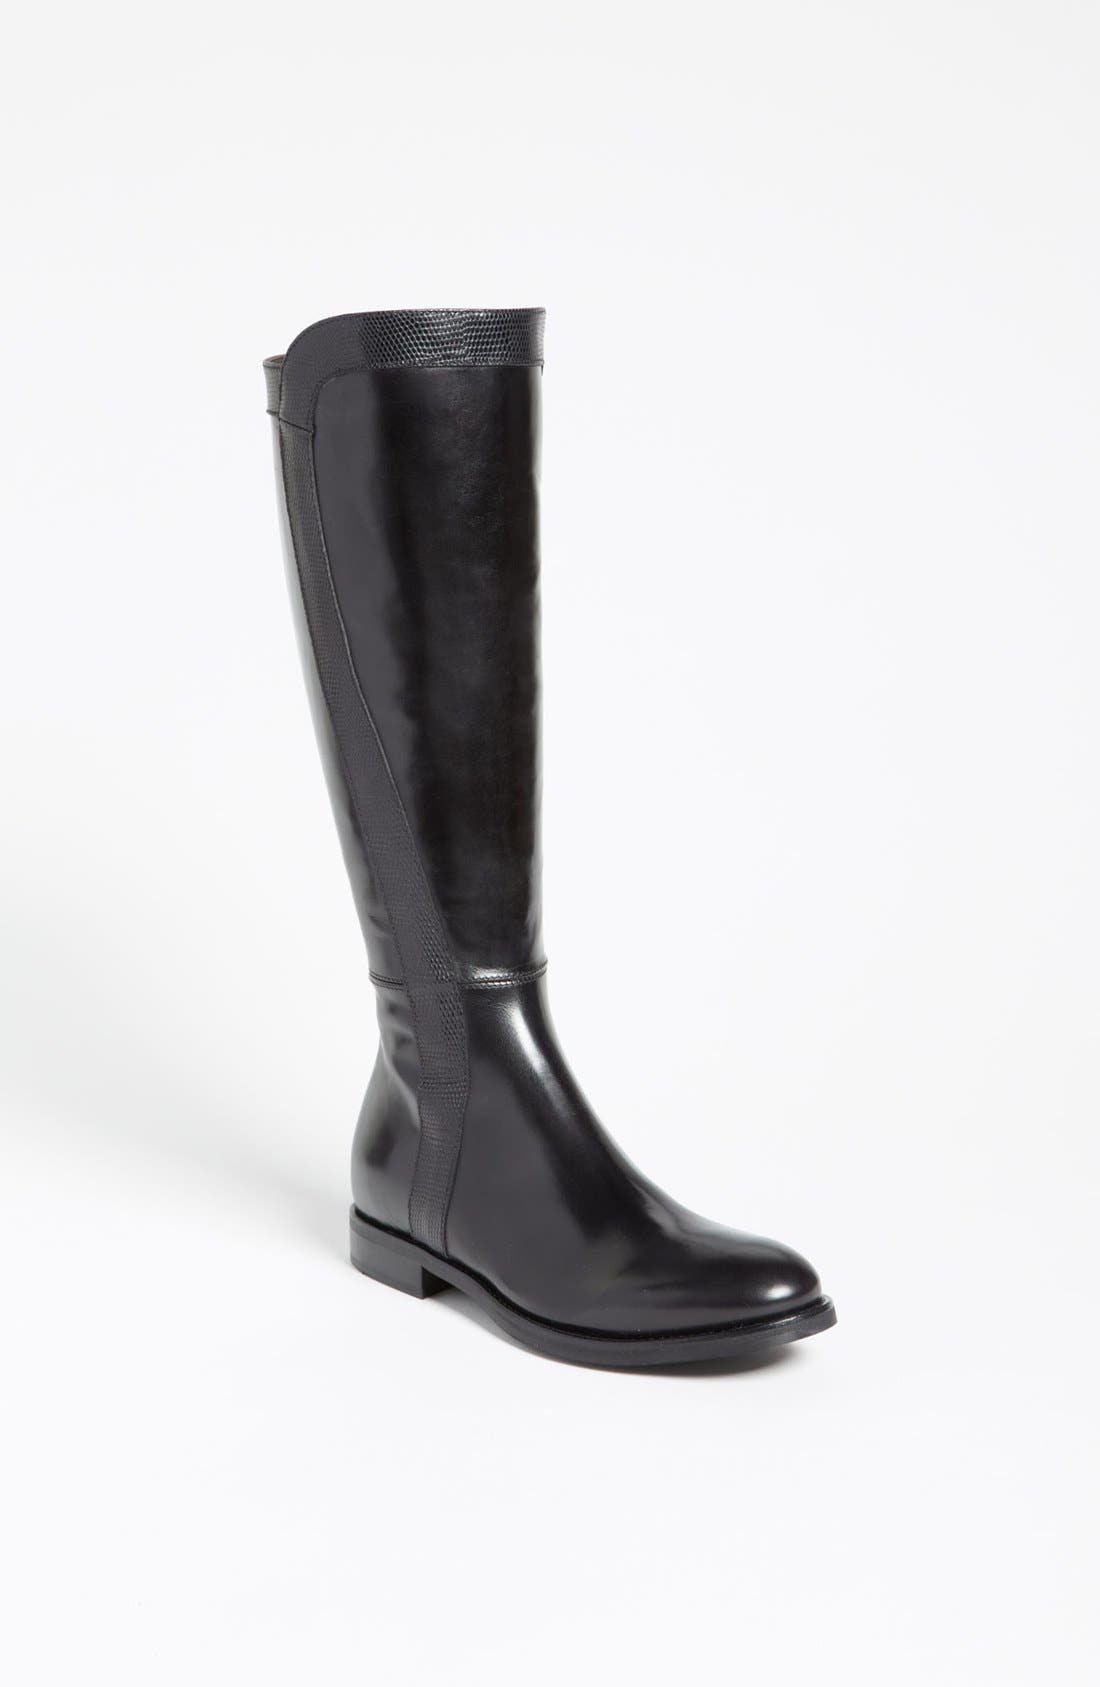 Attilio Giusti Leombruni Tall Boot,                         Main,                         color, Black